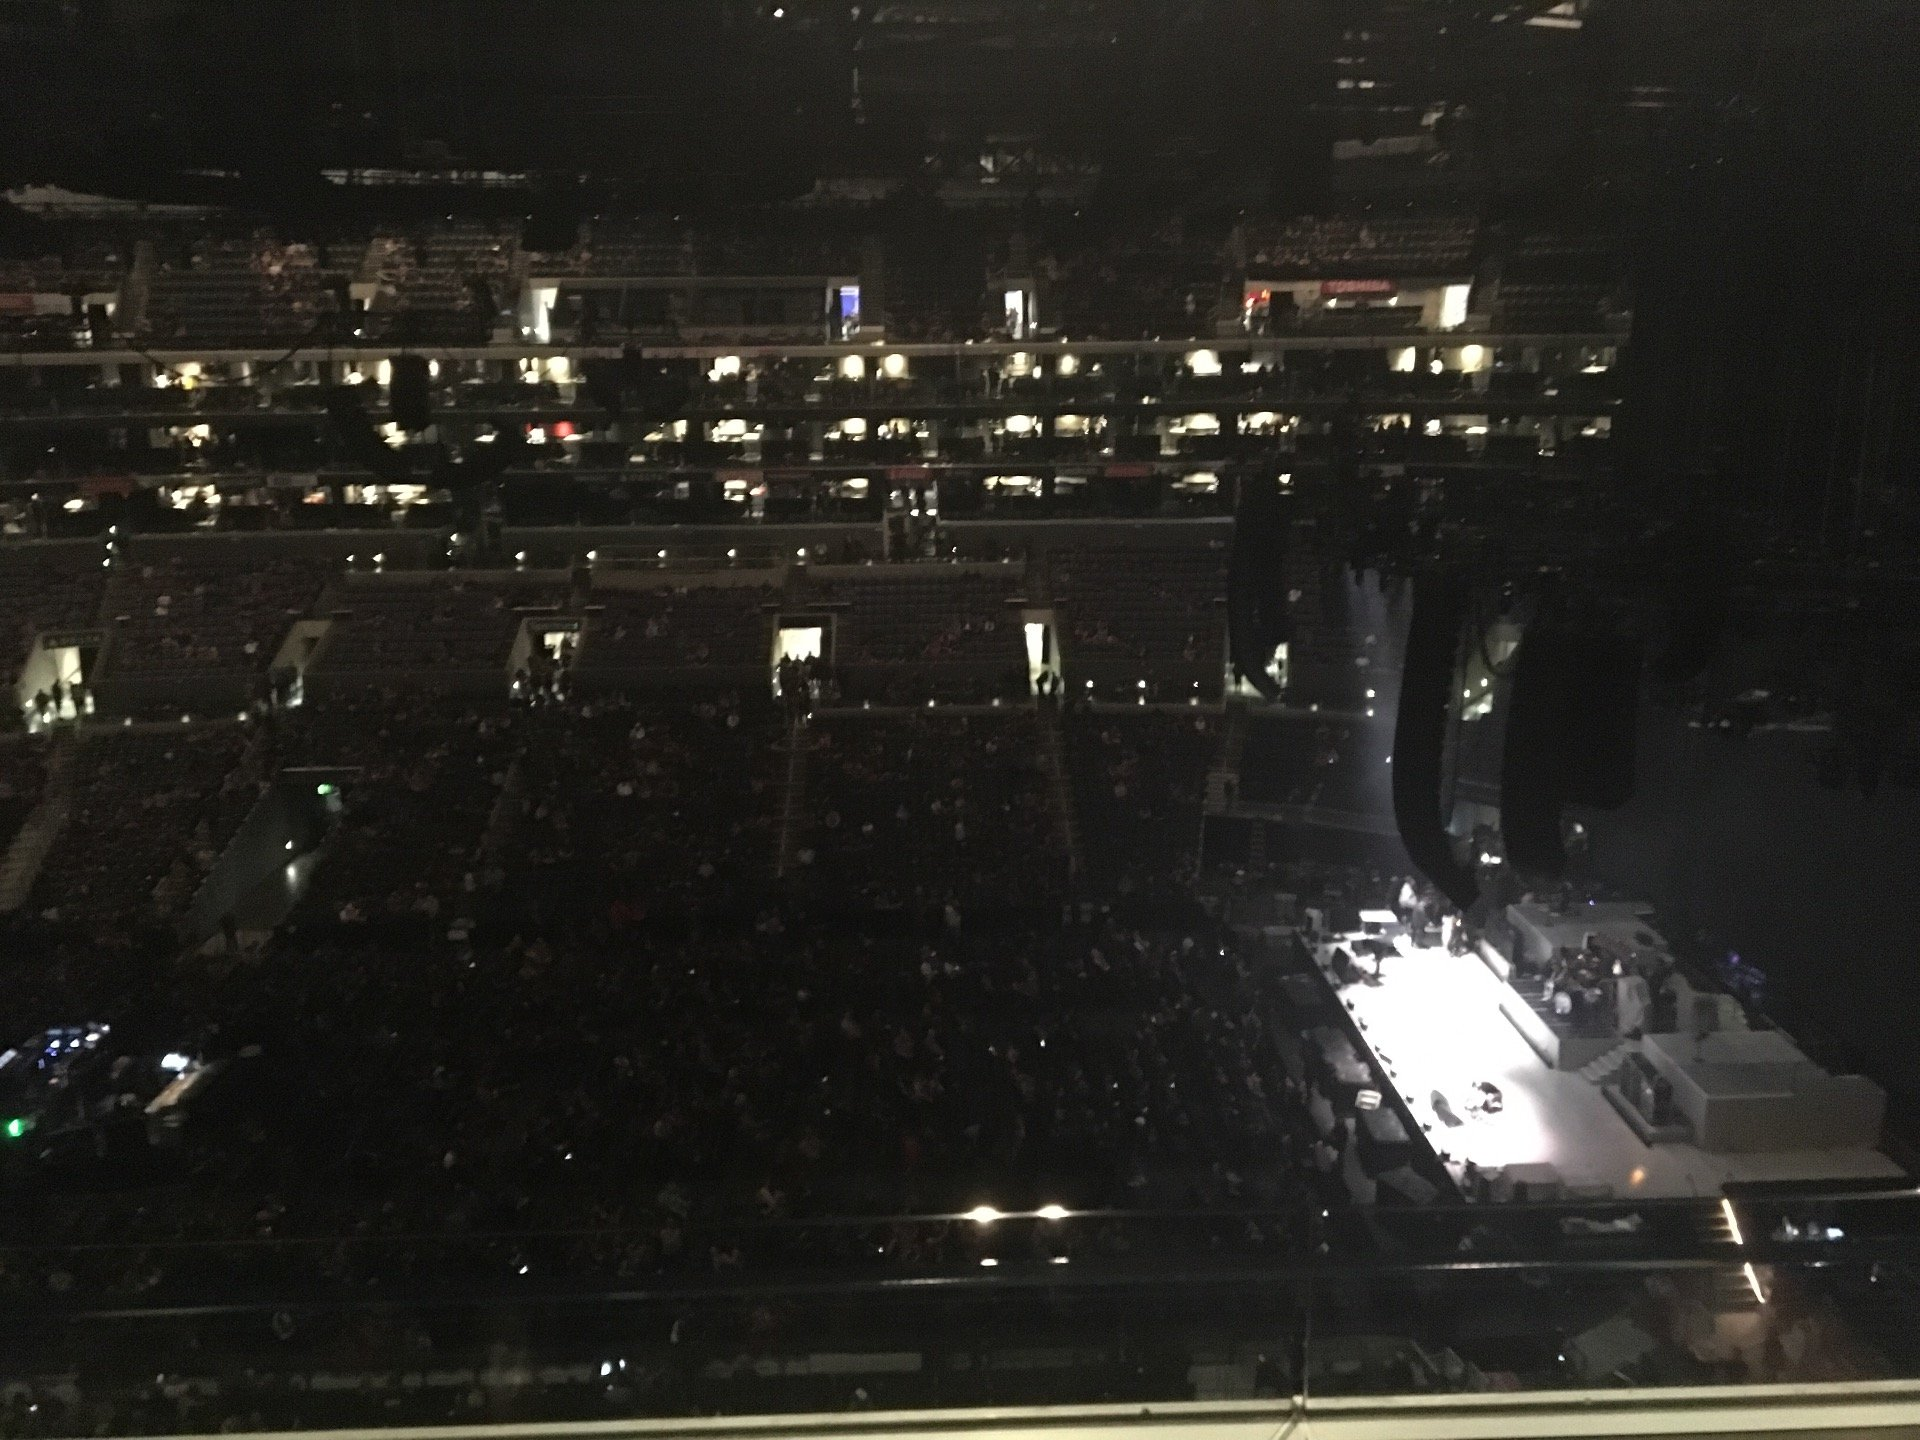 Staples Center Section 334 Row 2W Seat 9